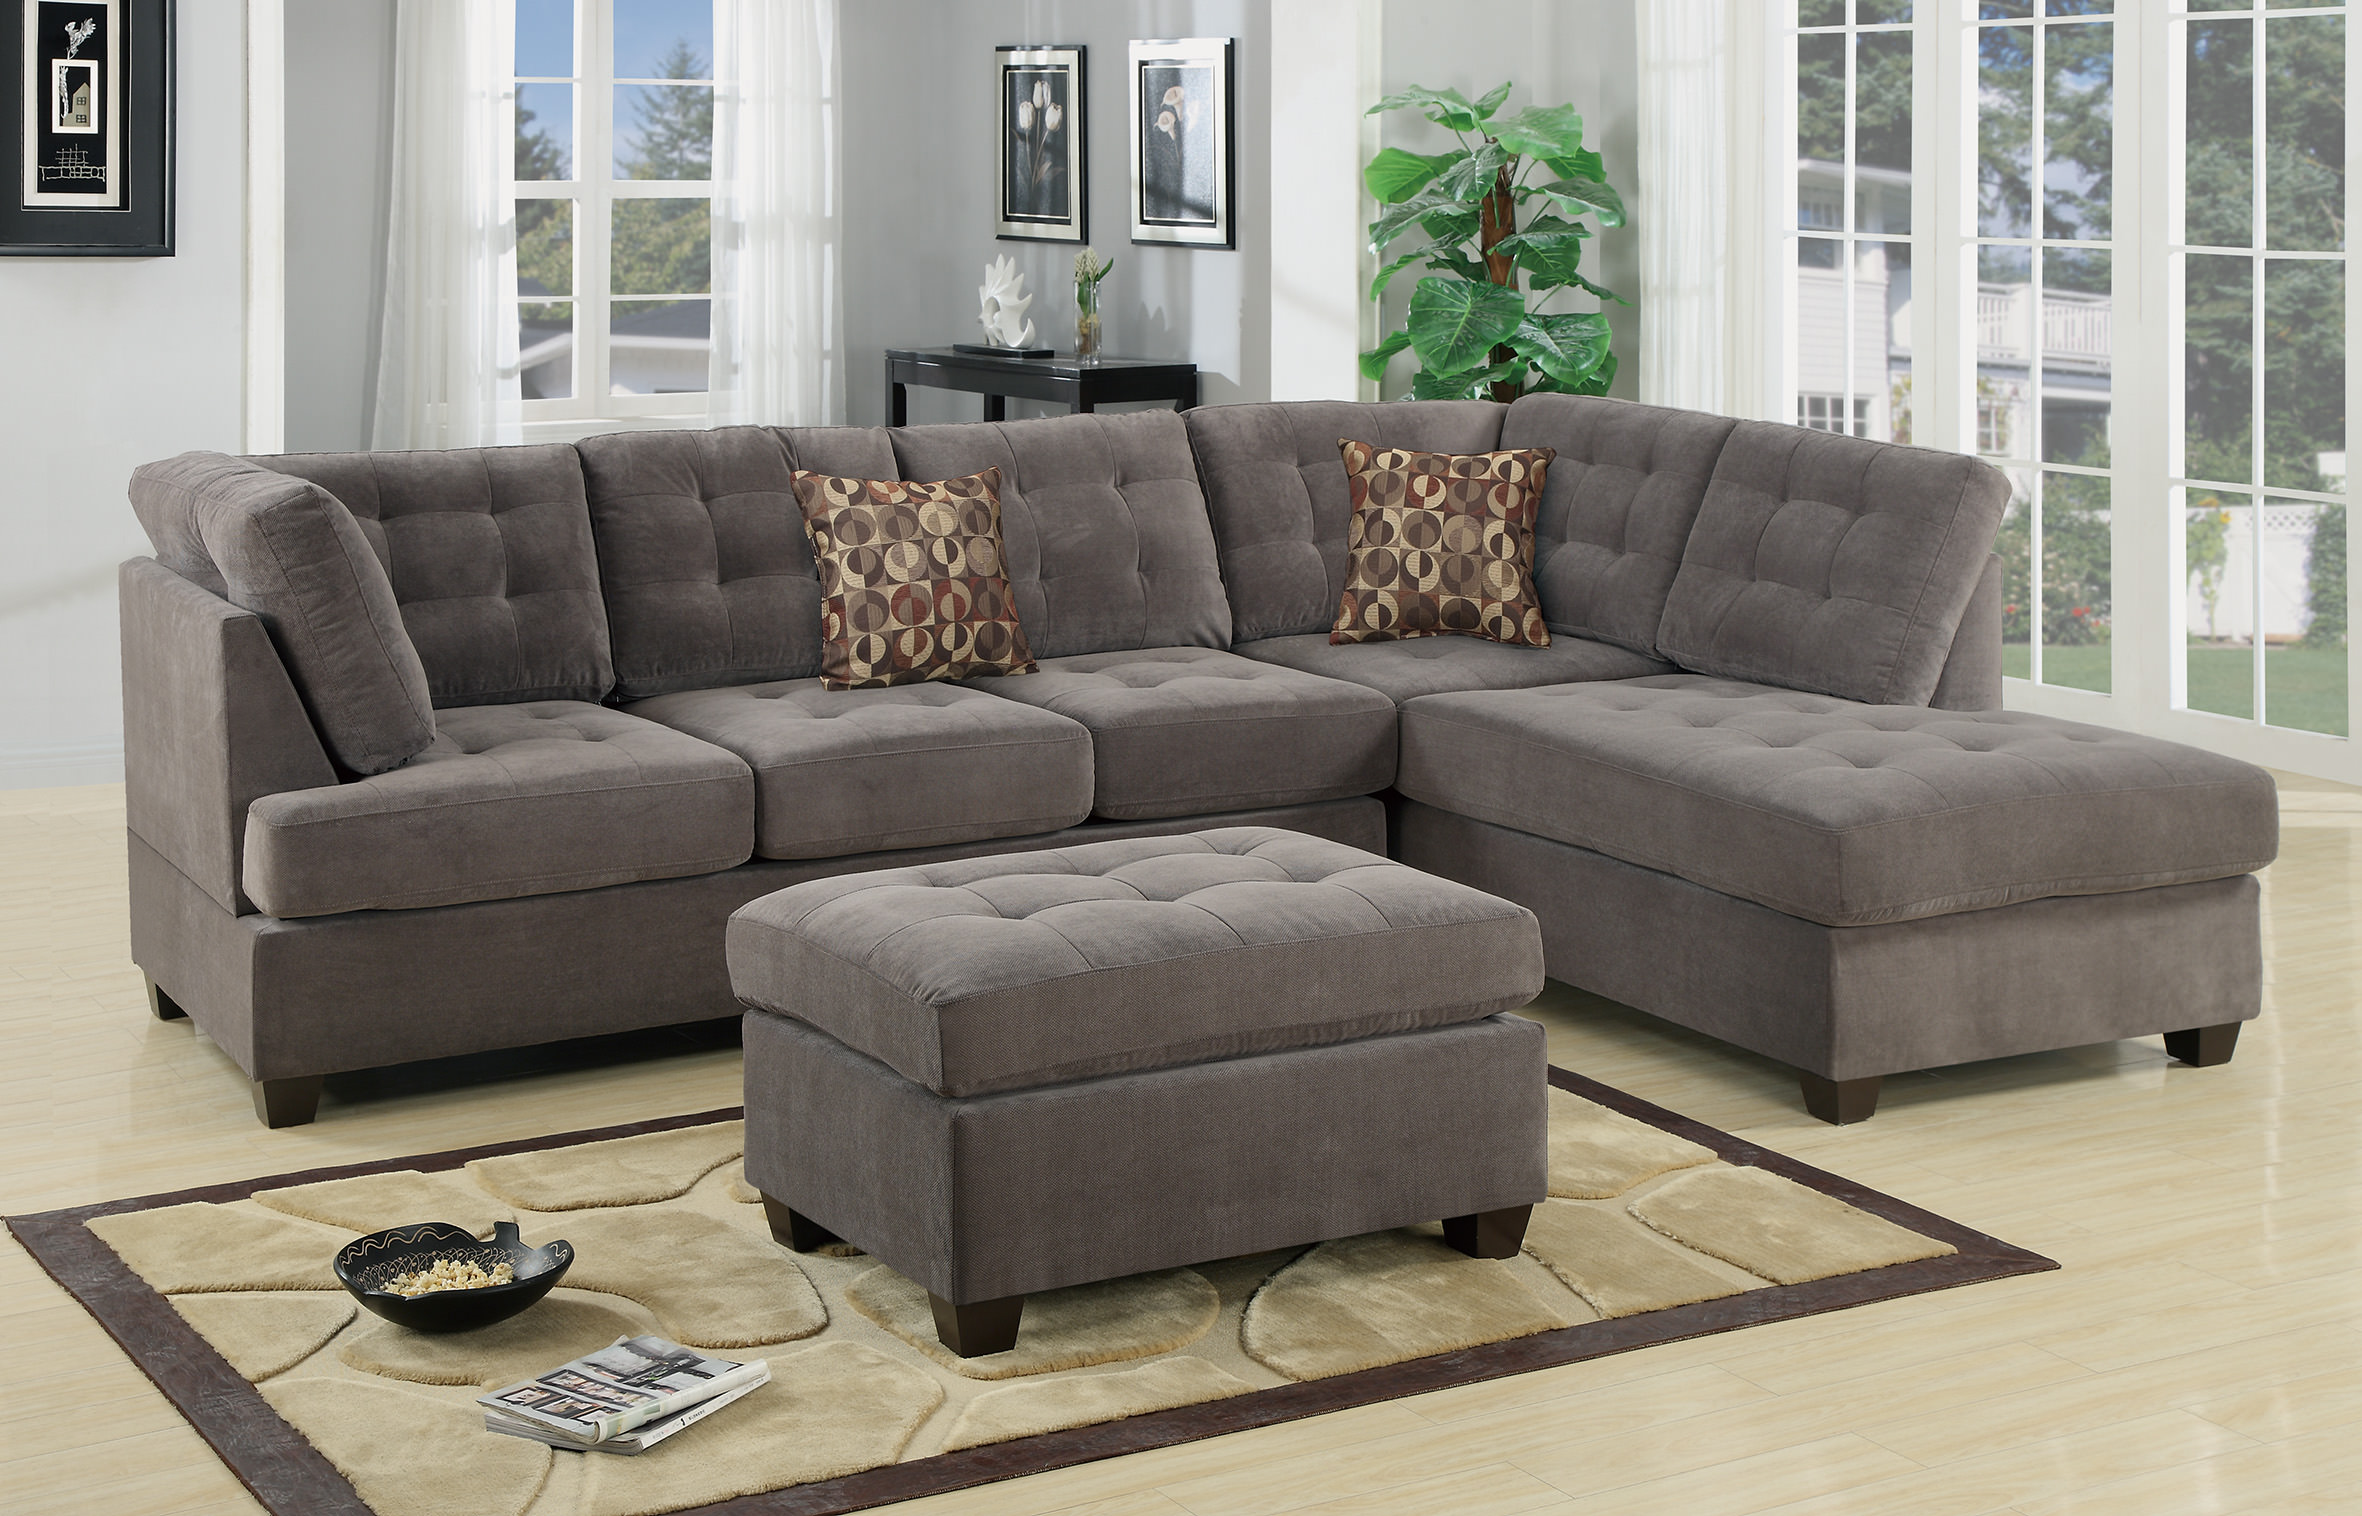 F7139 Charcoal 2 Pcs Sectional Sofa By Poundex